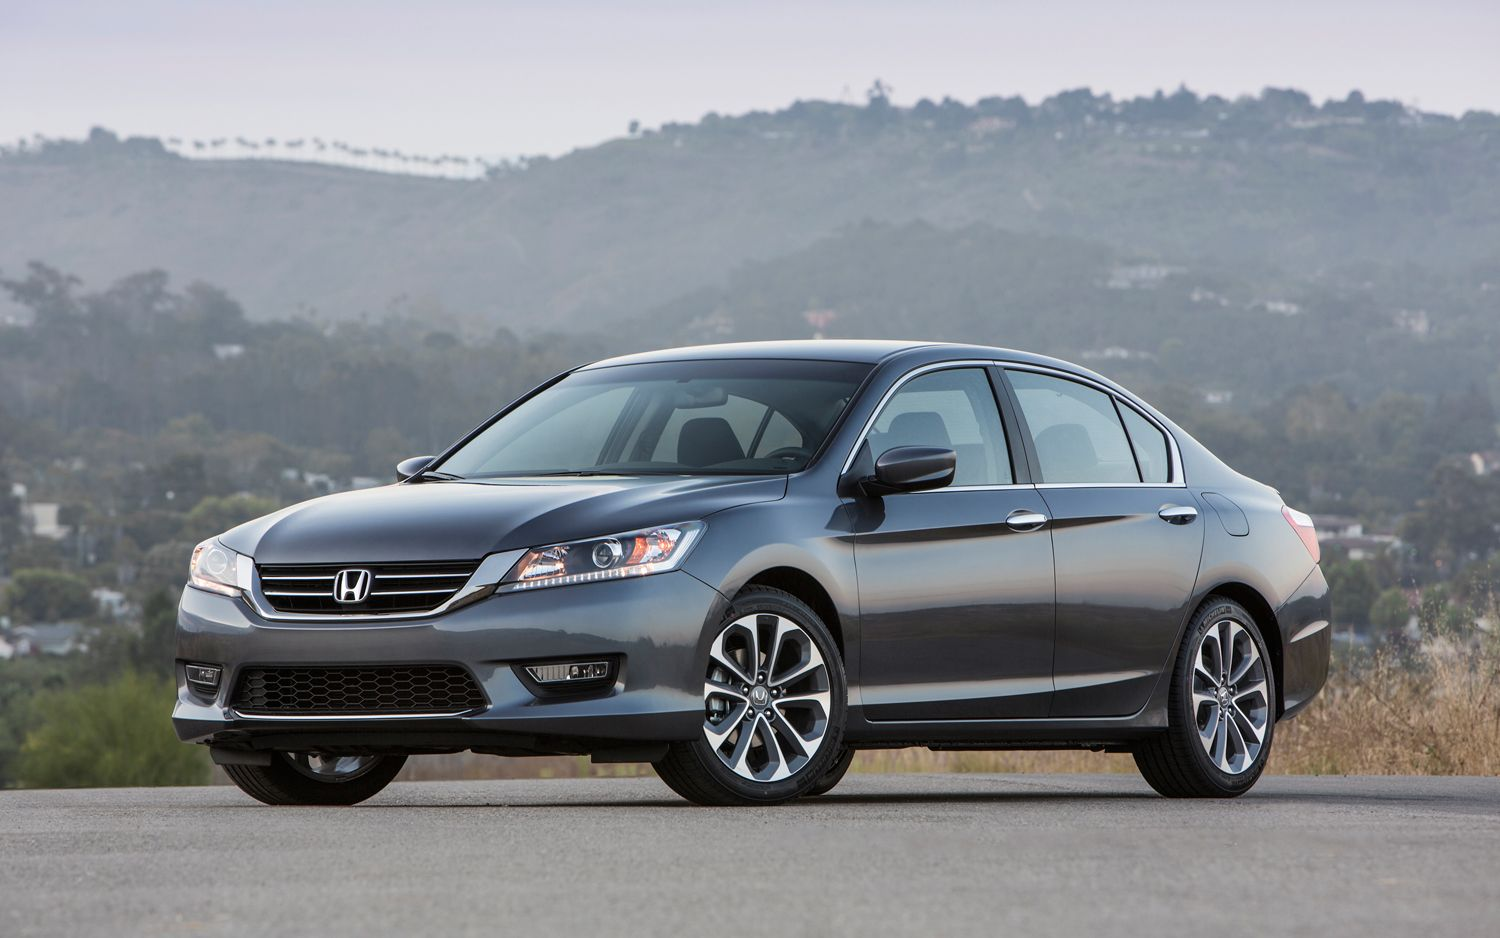 Honda Accord 2.4 2013 photo - 6